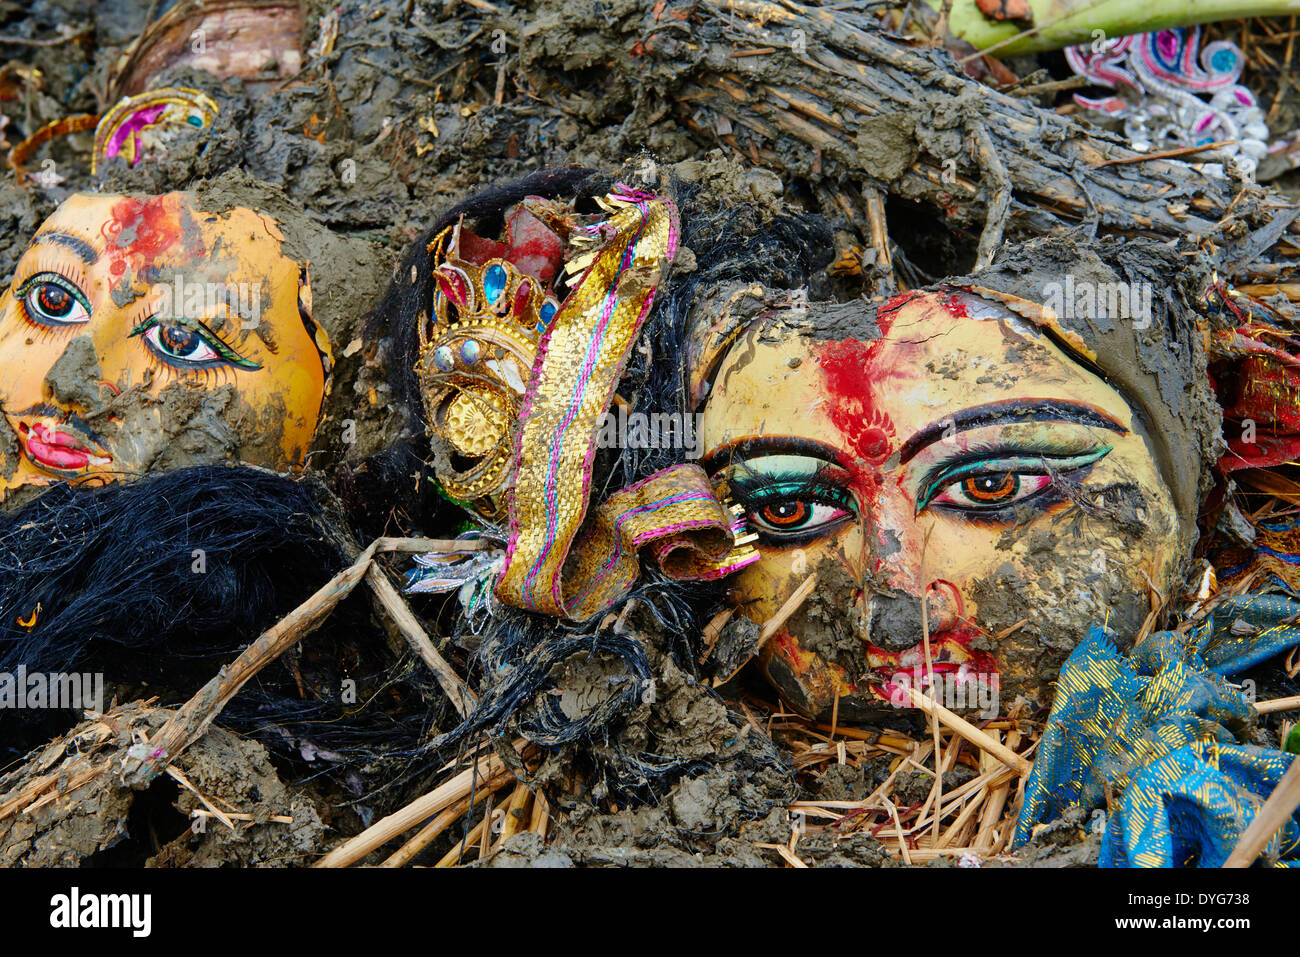 India, West Bengal, Kolkata, Calcutta, at the end of Durga Puja the idols are thrown out to the Hooghly river - Stock Image